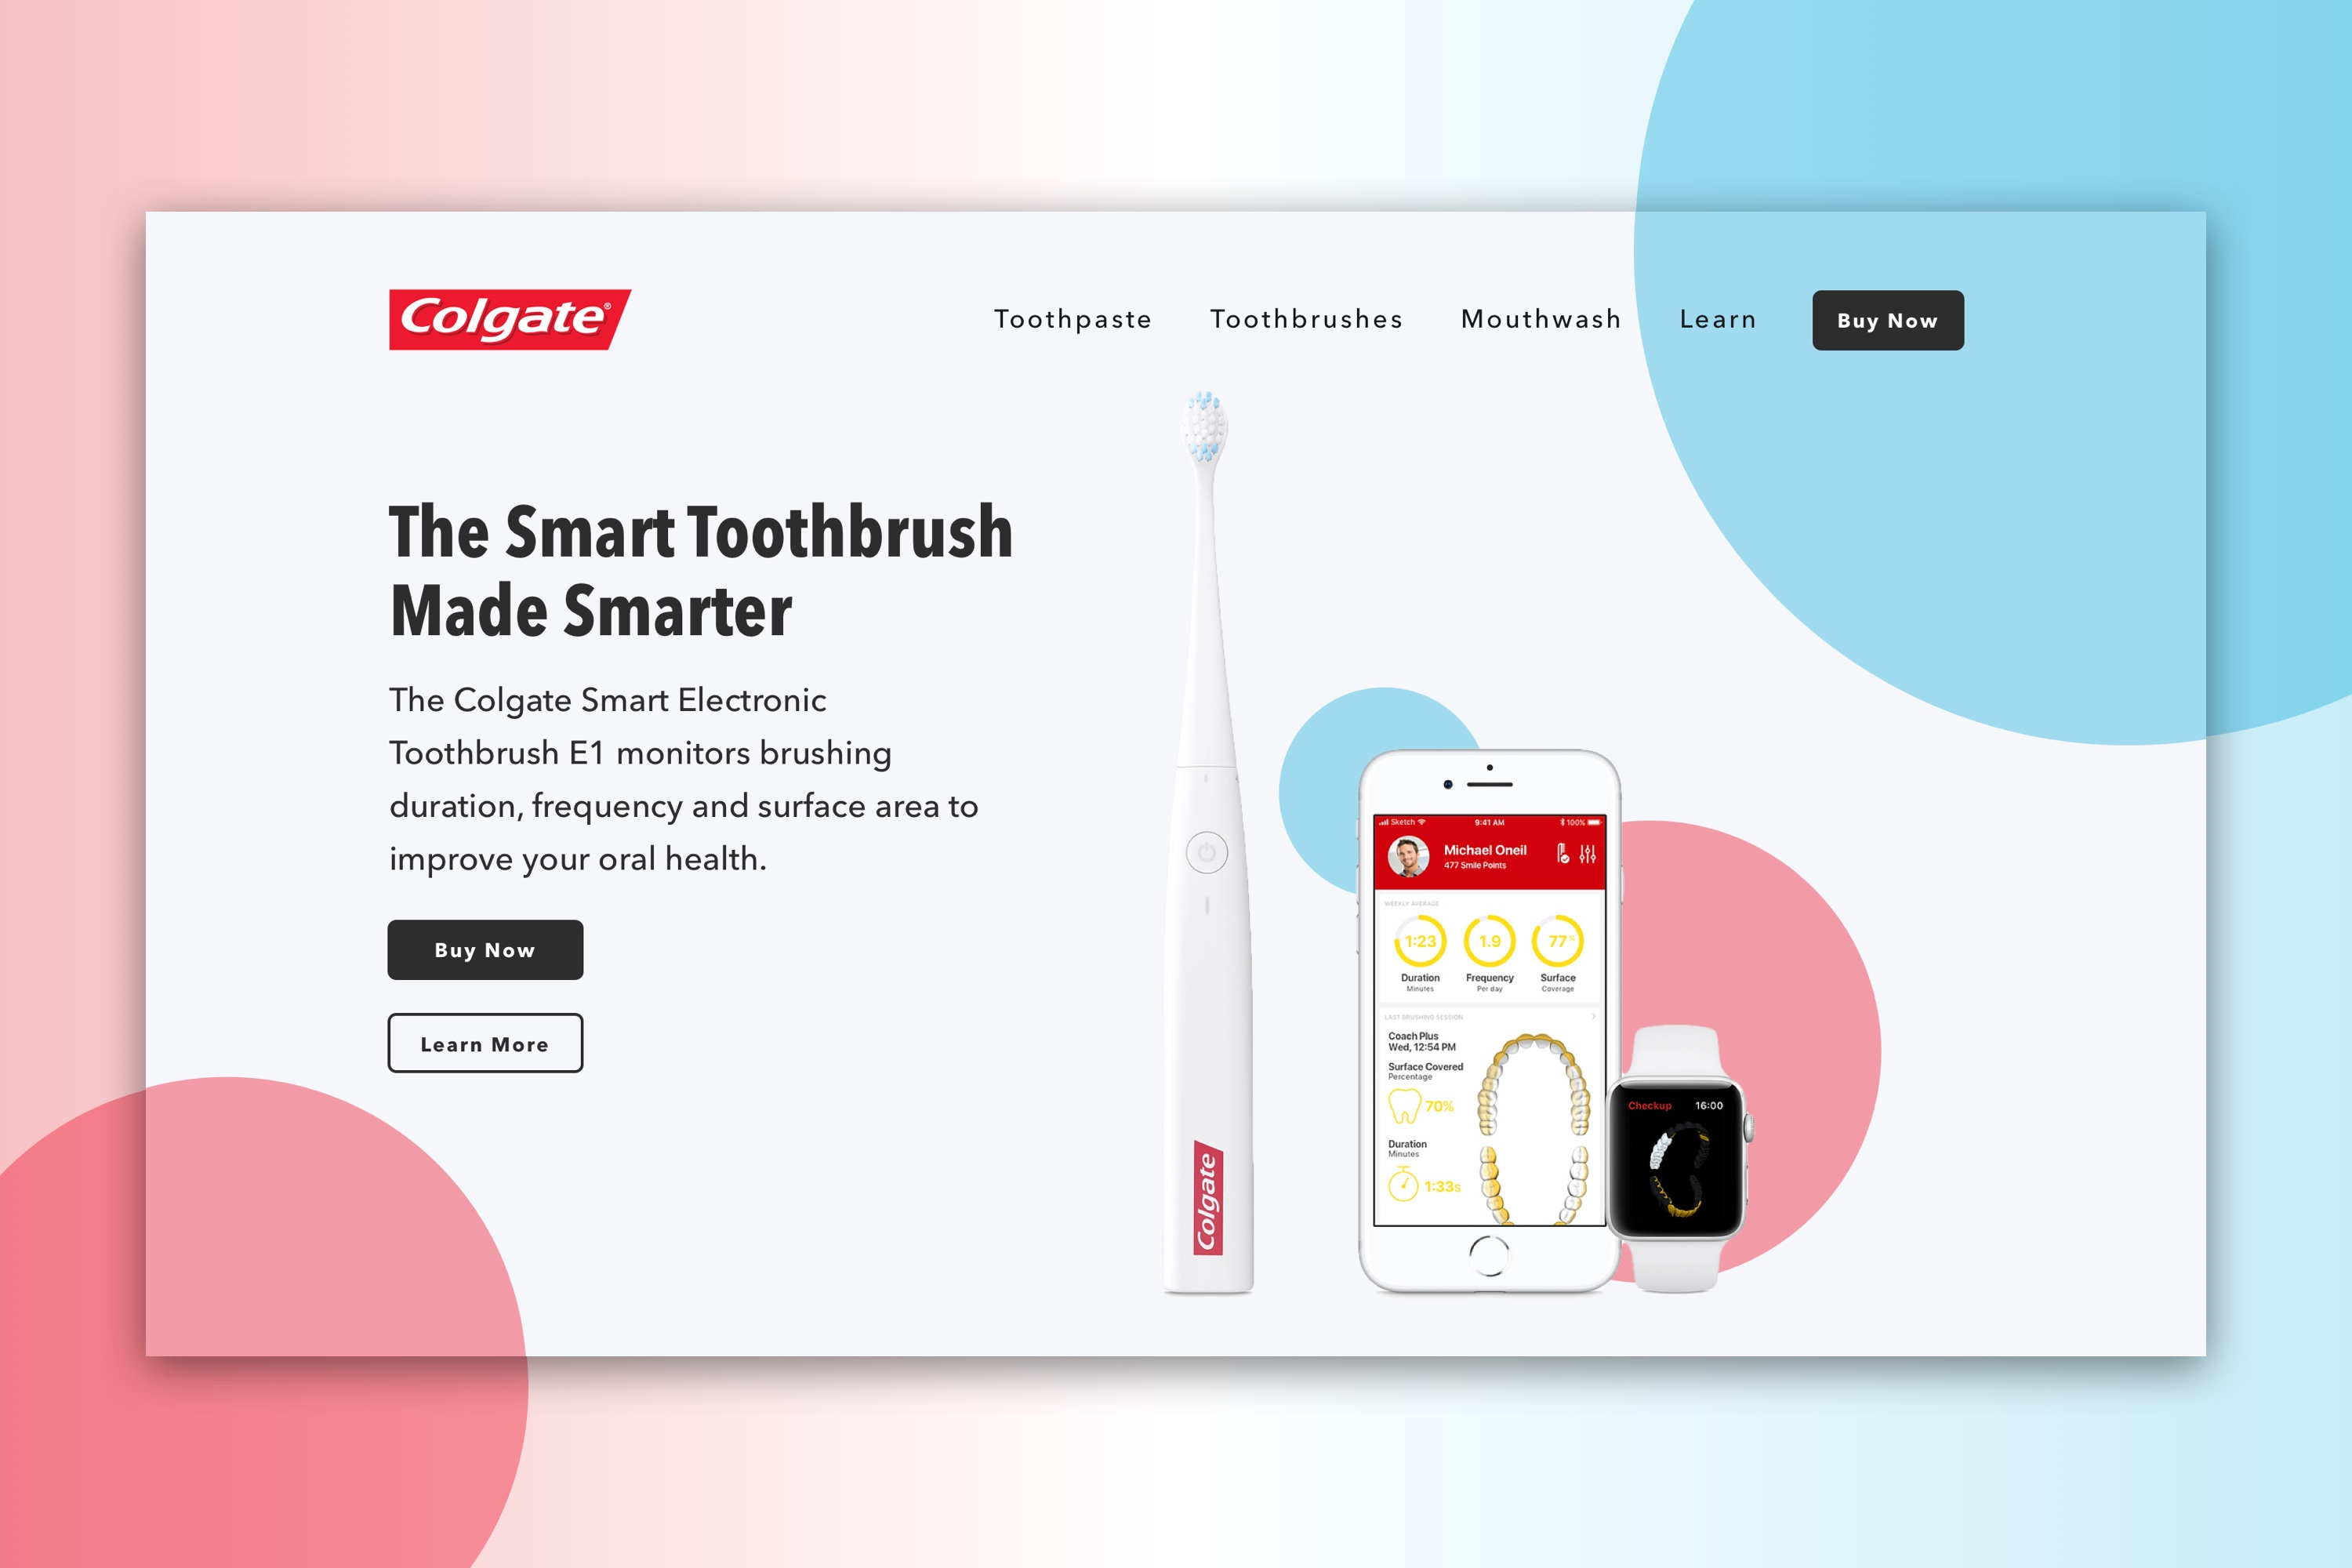 Redesigned website for Colgate that their Smart Electronic Toothbrush E1.